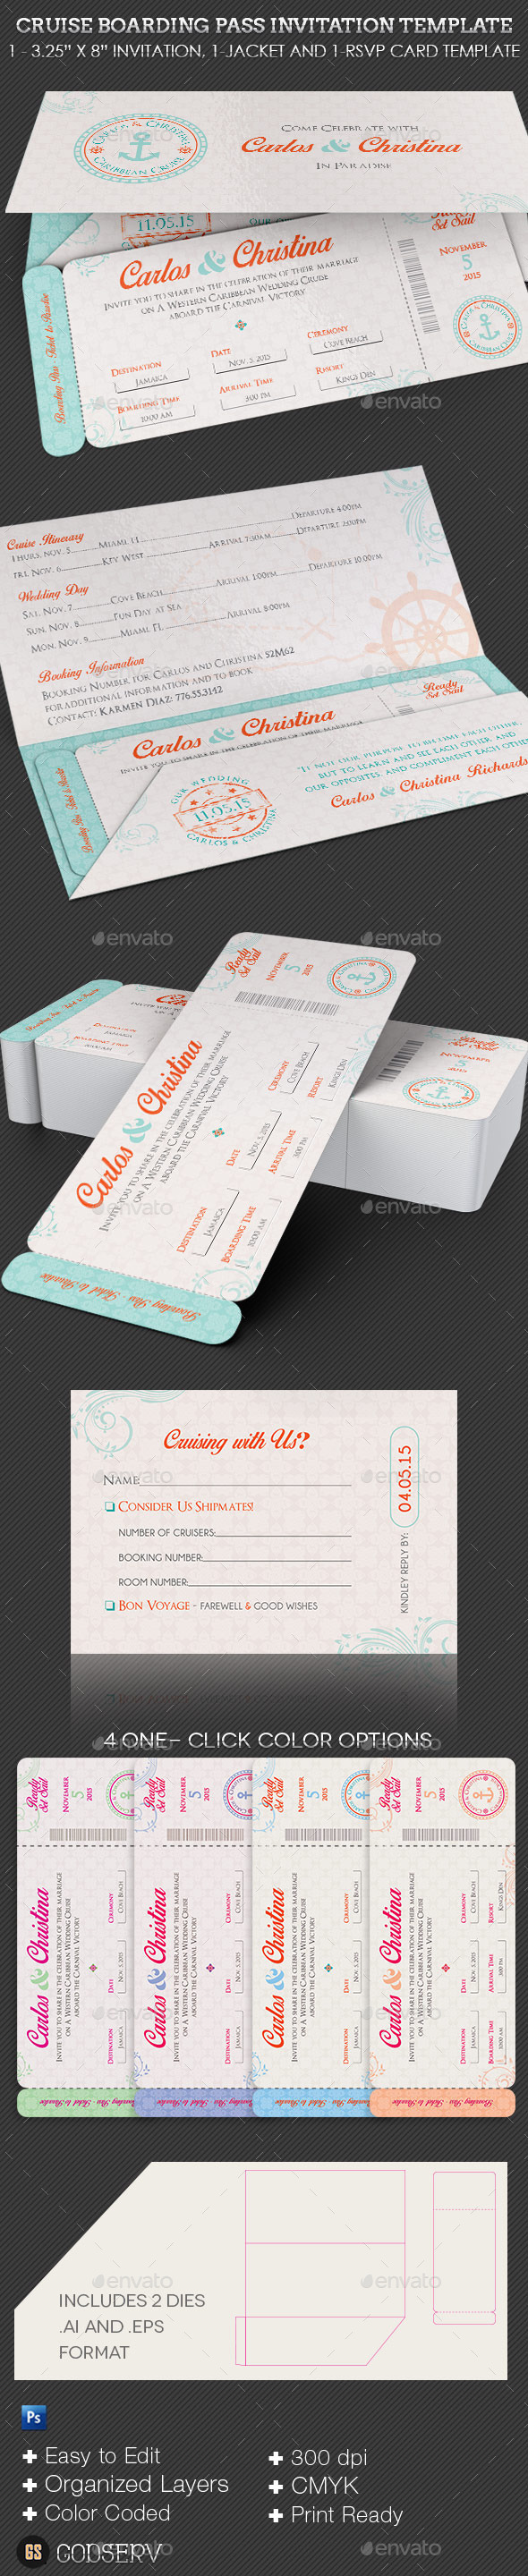 Wedding cruise boarding pass invitation template graphicmule wedding cruise boarding pass invitation template stopboris Image collections